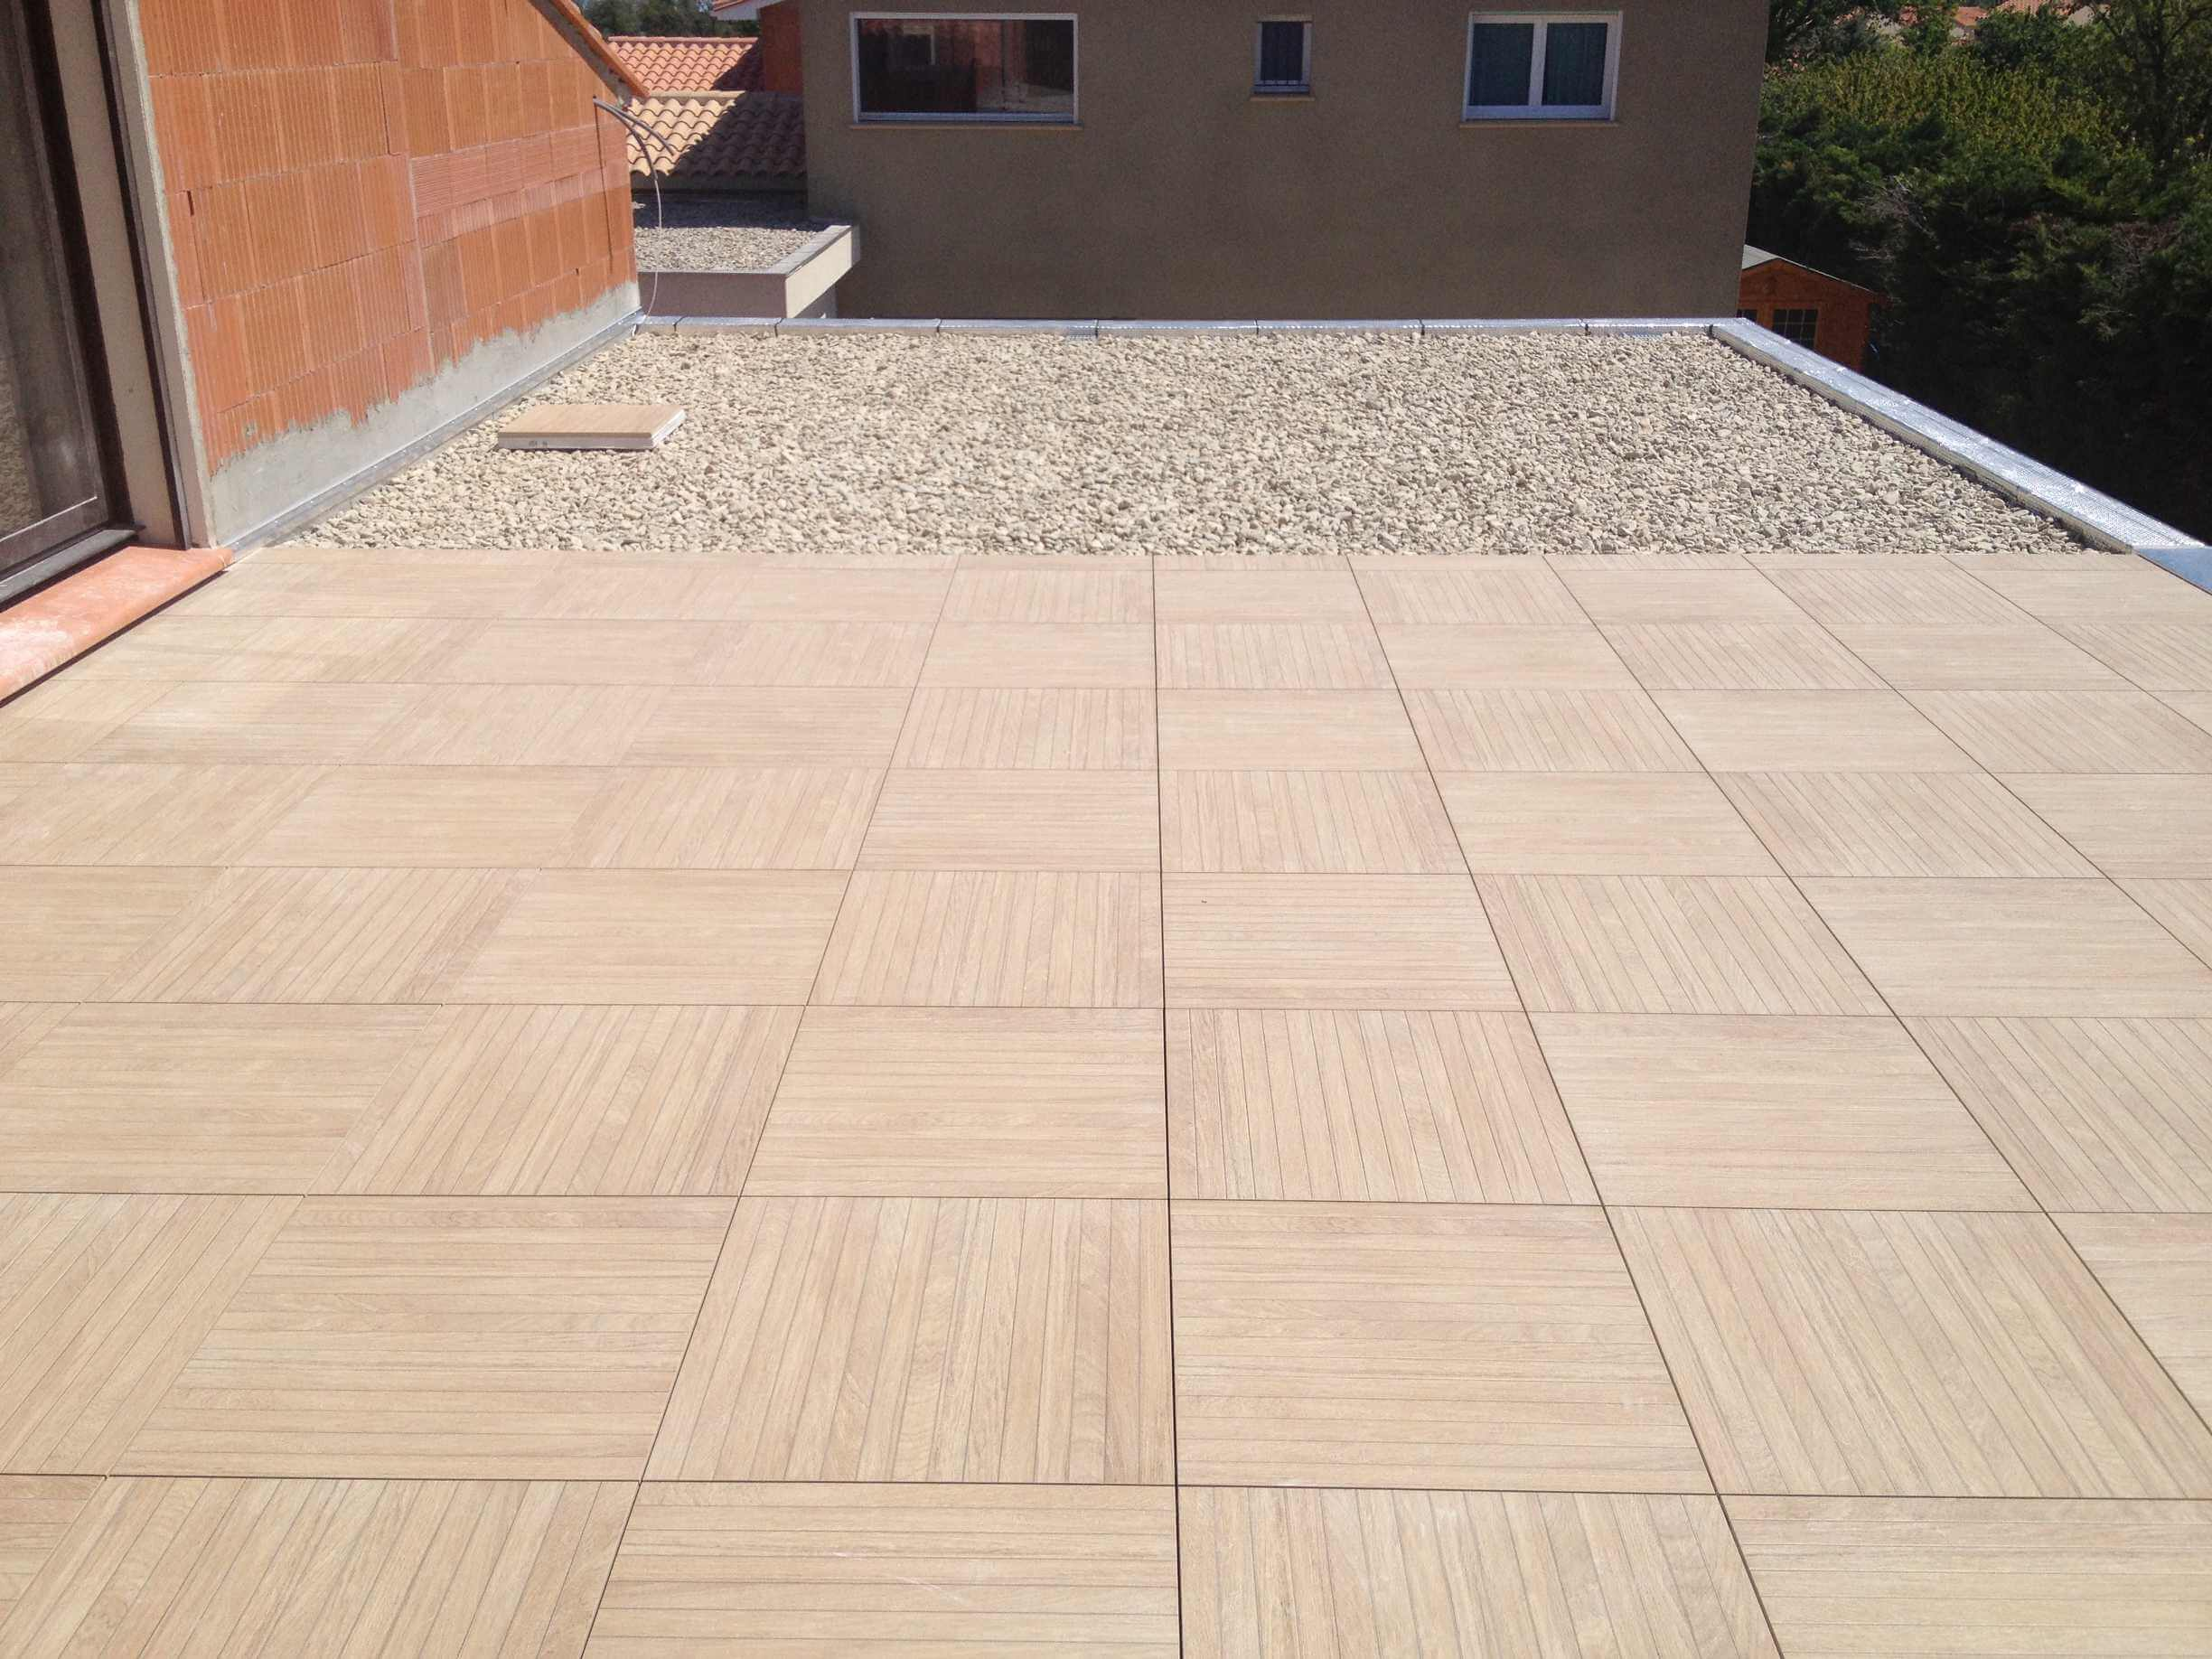 7-dalle-60-carrelage-imitation-bois-et-terrasse-inaccessible.jpg